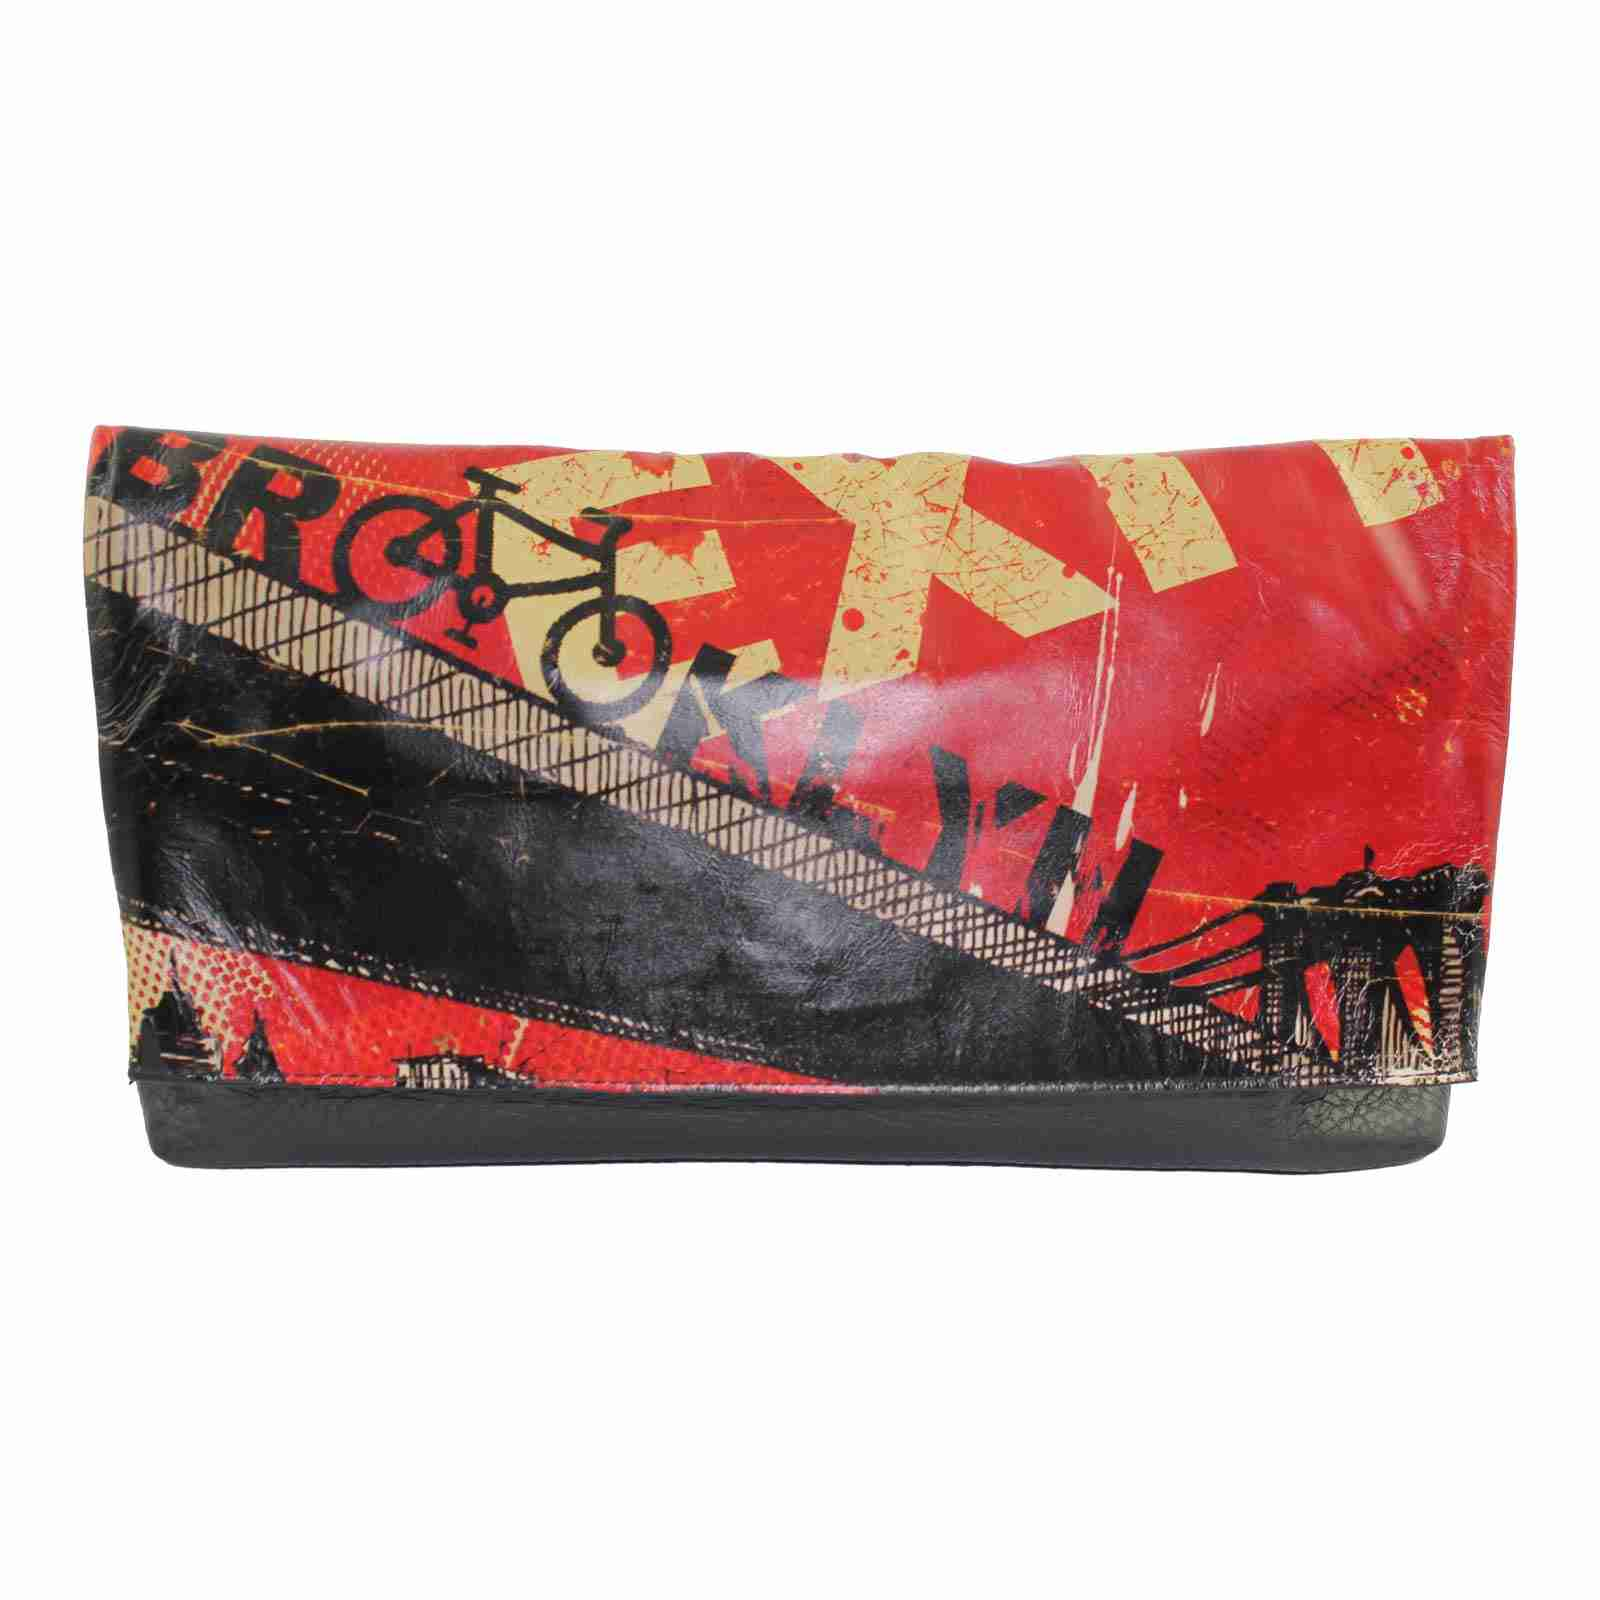 Brooklyn Bridge Photo Clutch by Studio Manhattan